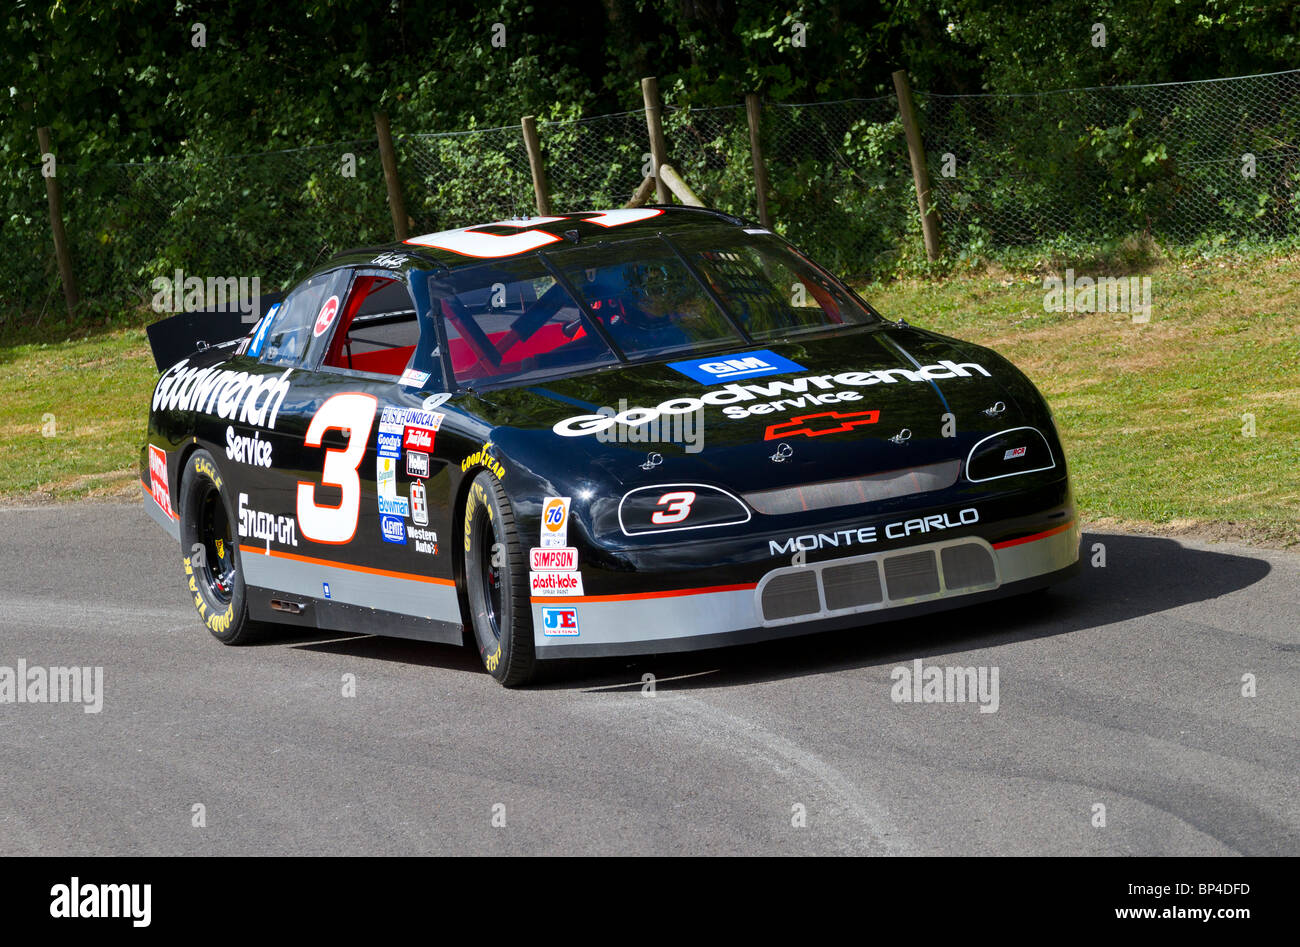 All Chevy 1995 chevrolet monte carlo 1995 Chevrolet Monte Carlo with driver Kerry Earnhardt at the 2010 ...